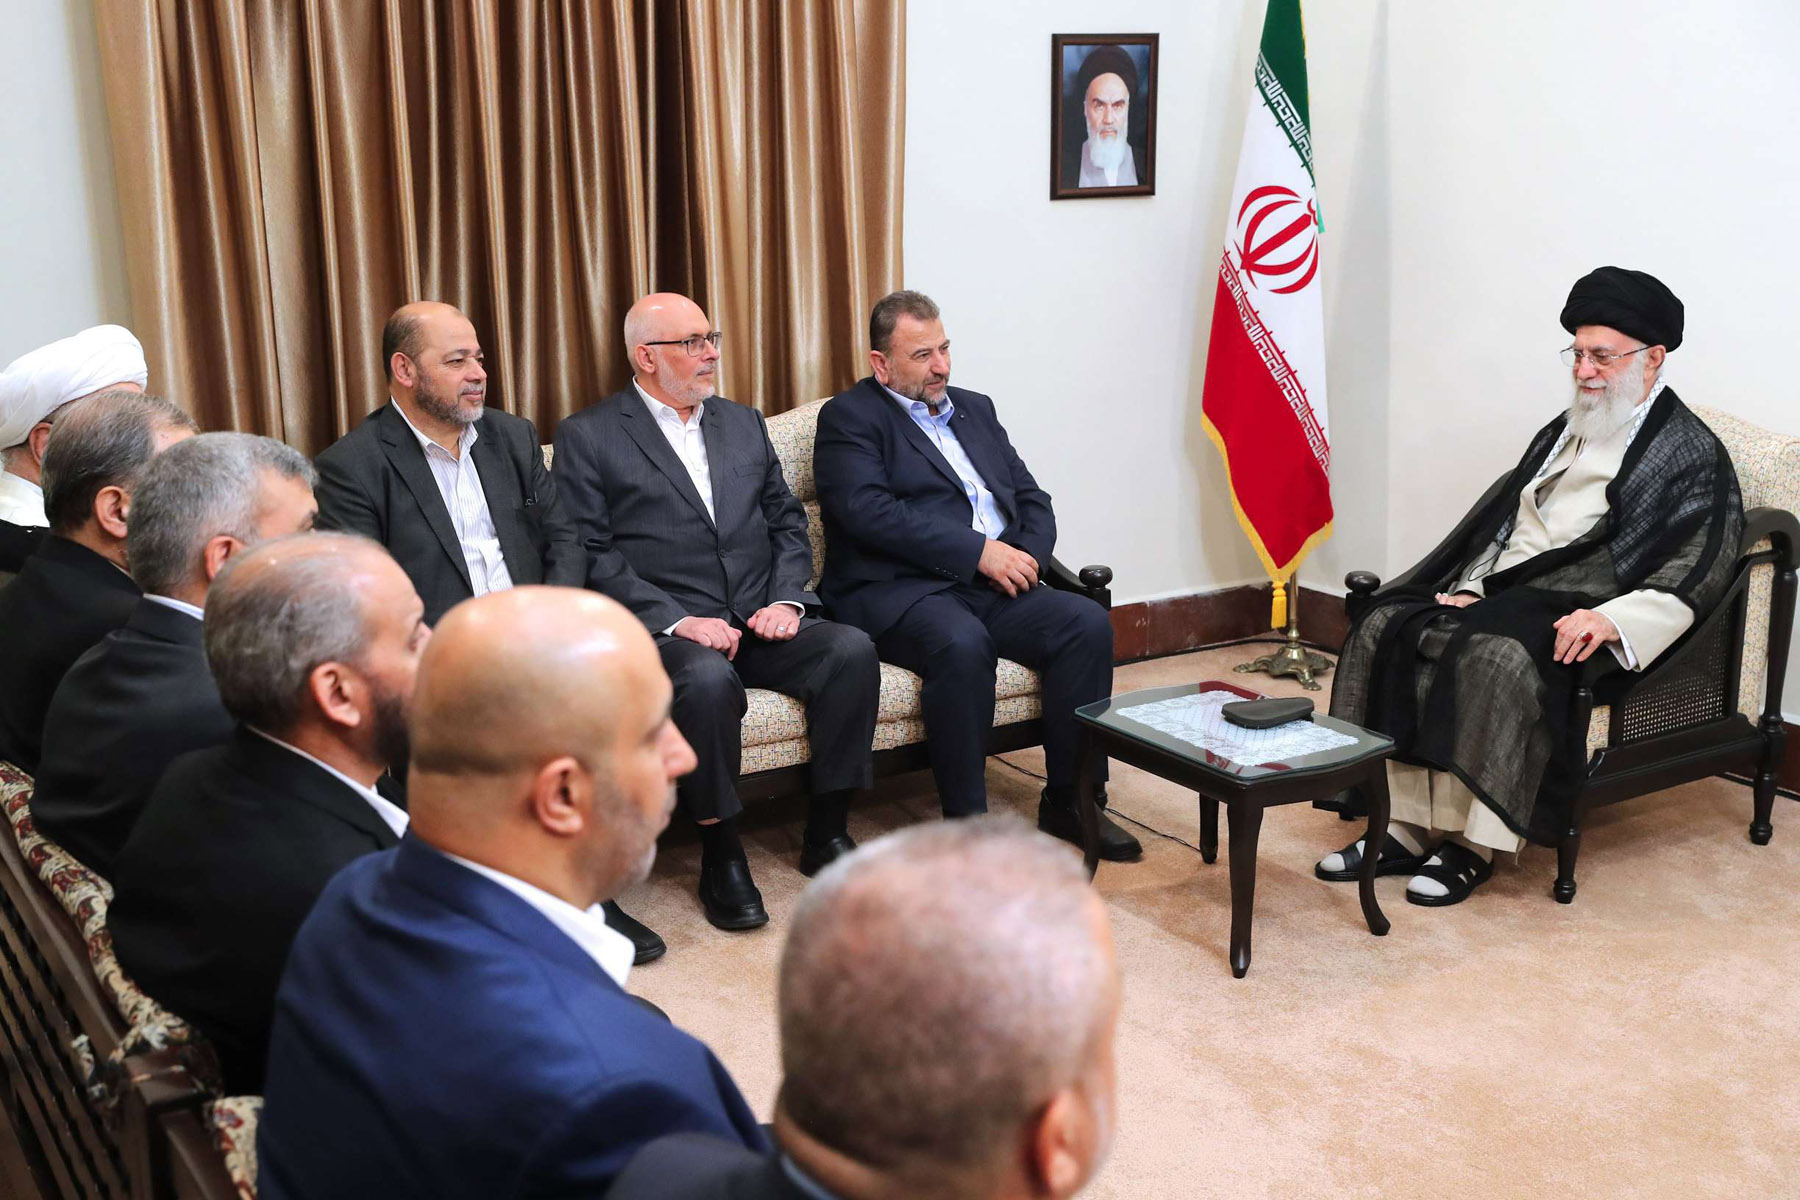 Iranian Supreme Leader Ayatollah Ali Khamenei, right, meets Hamas deputy chief, Saleh al-Arouri, second right, and the Hamas delegation, in Tehran, Iran, Monday, July 22. (Office of the Iranian Supreme Leader via AP)